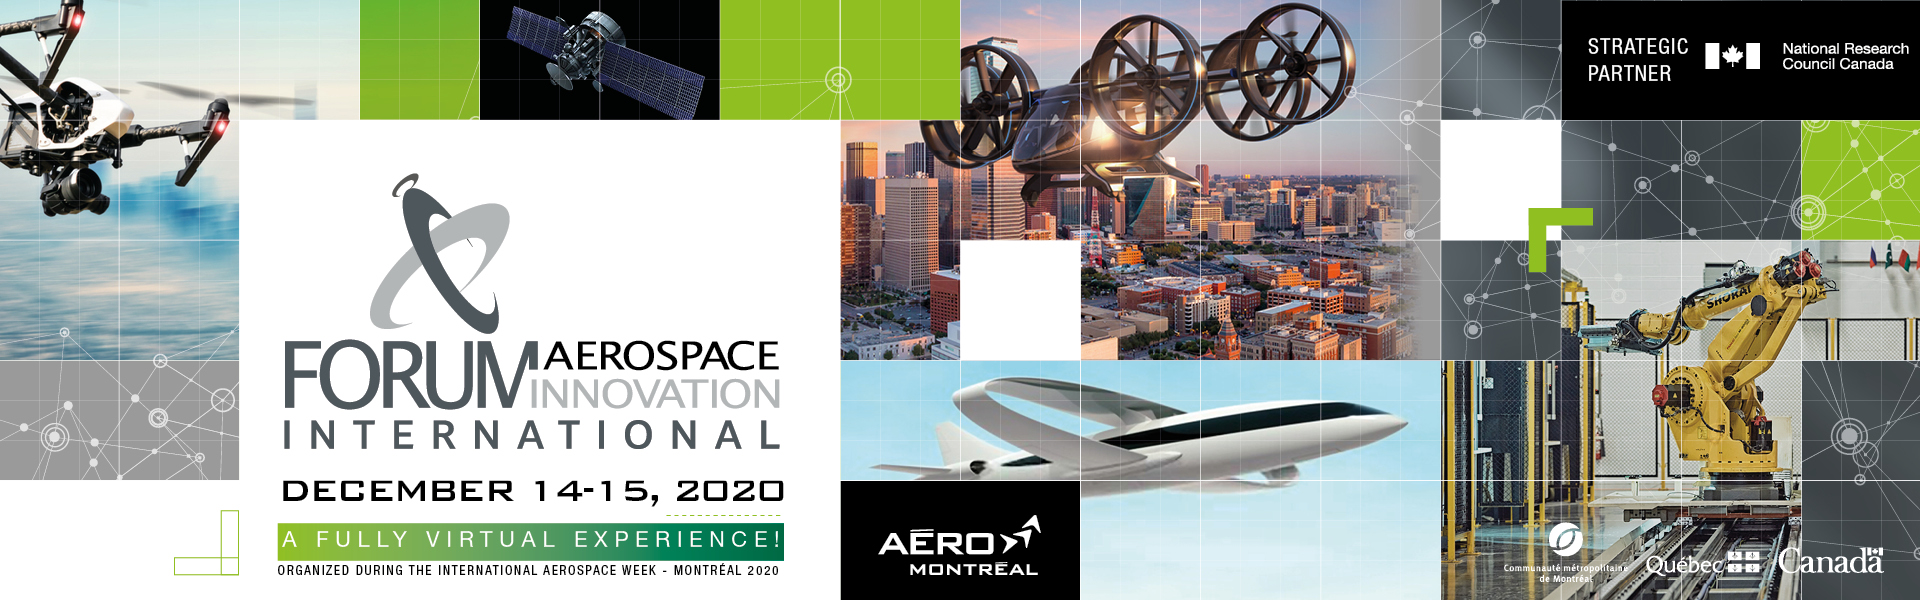 International Aerospace Innovation Forum 2020 (A fully virtual experience)